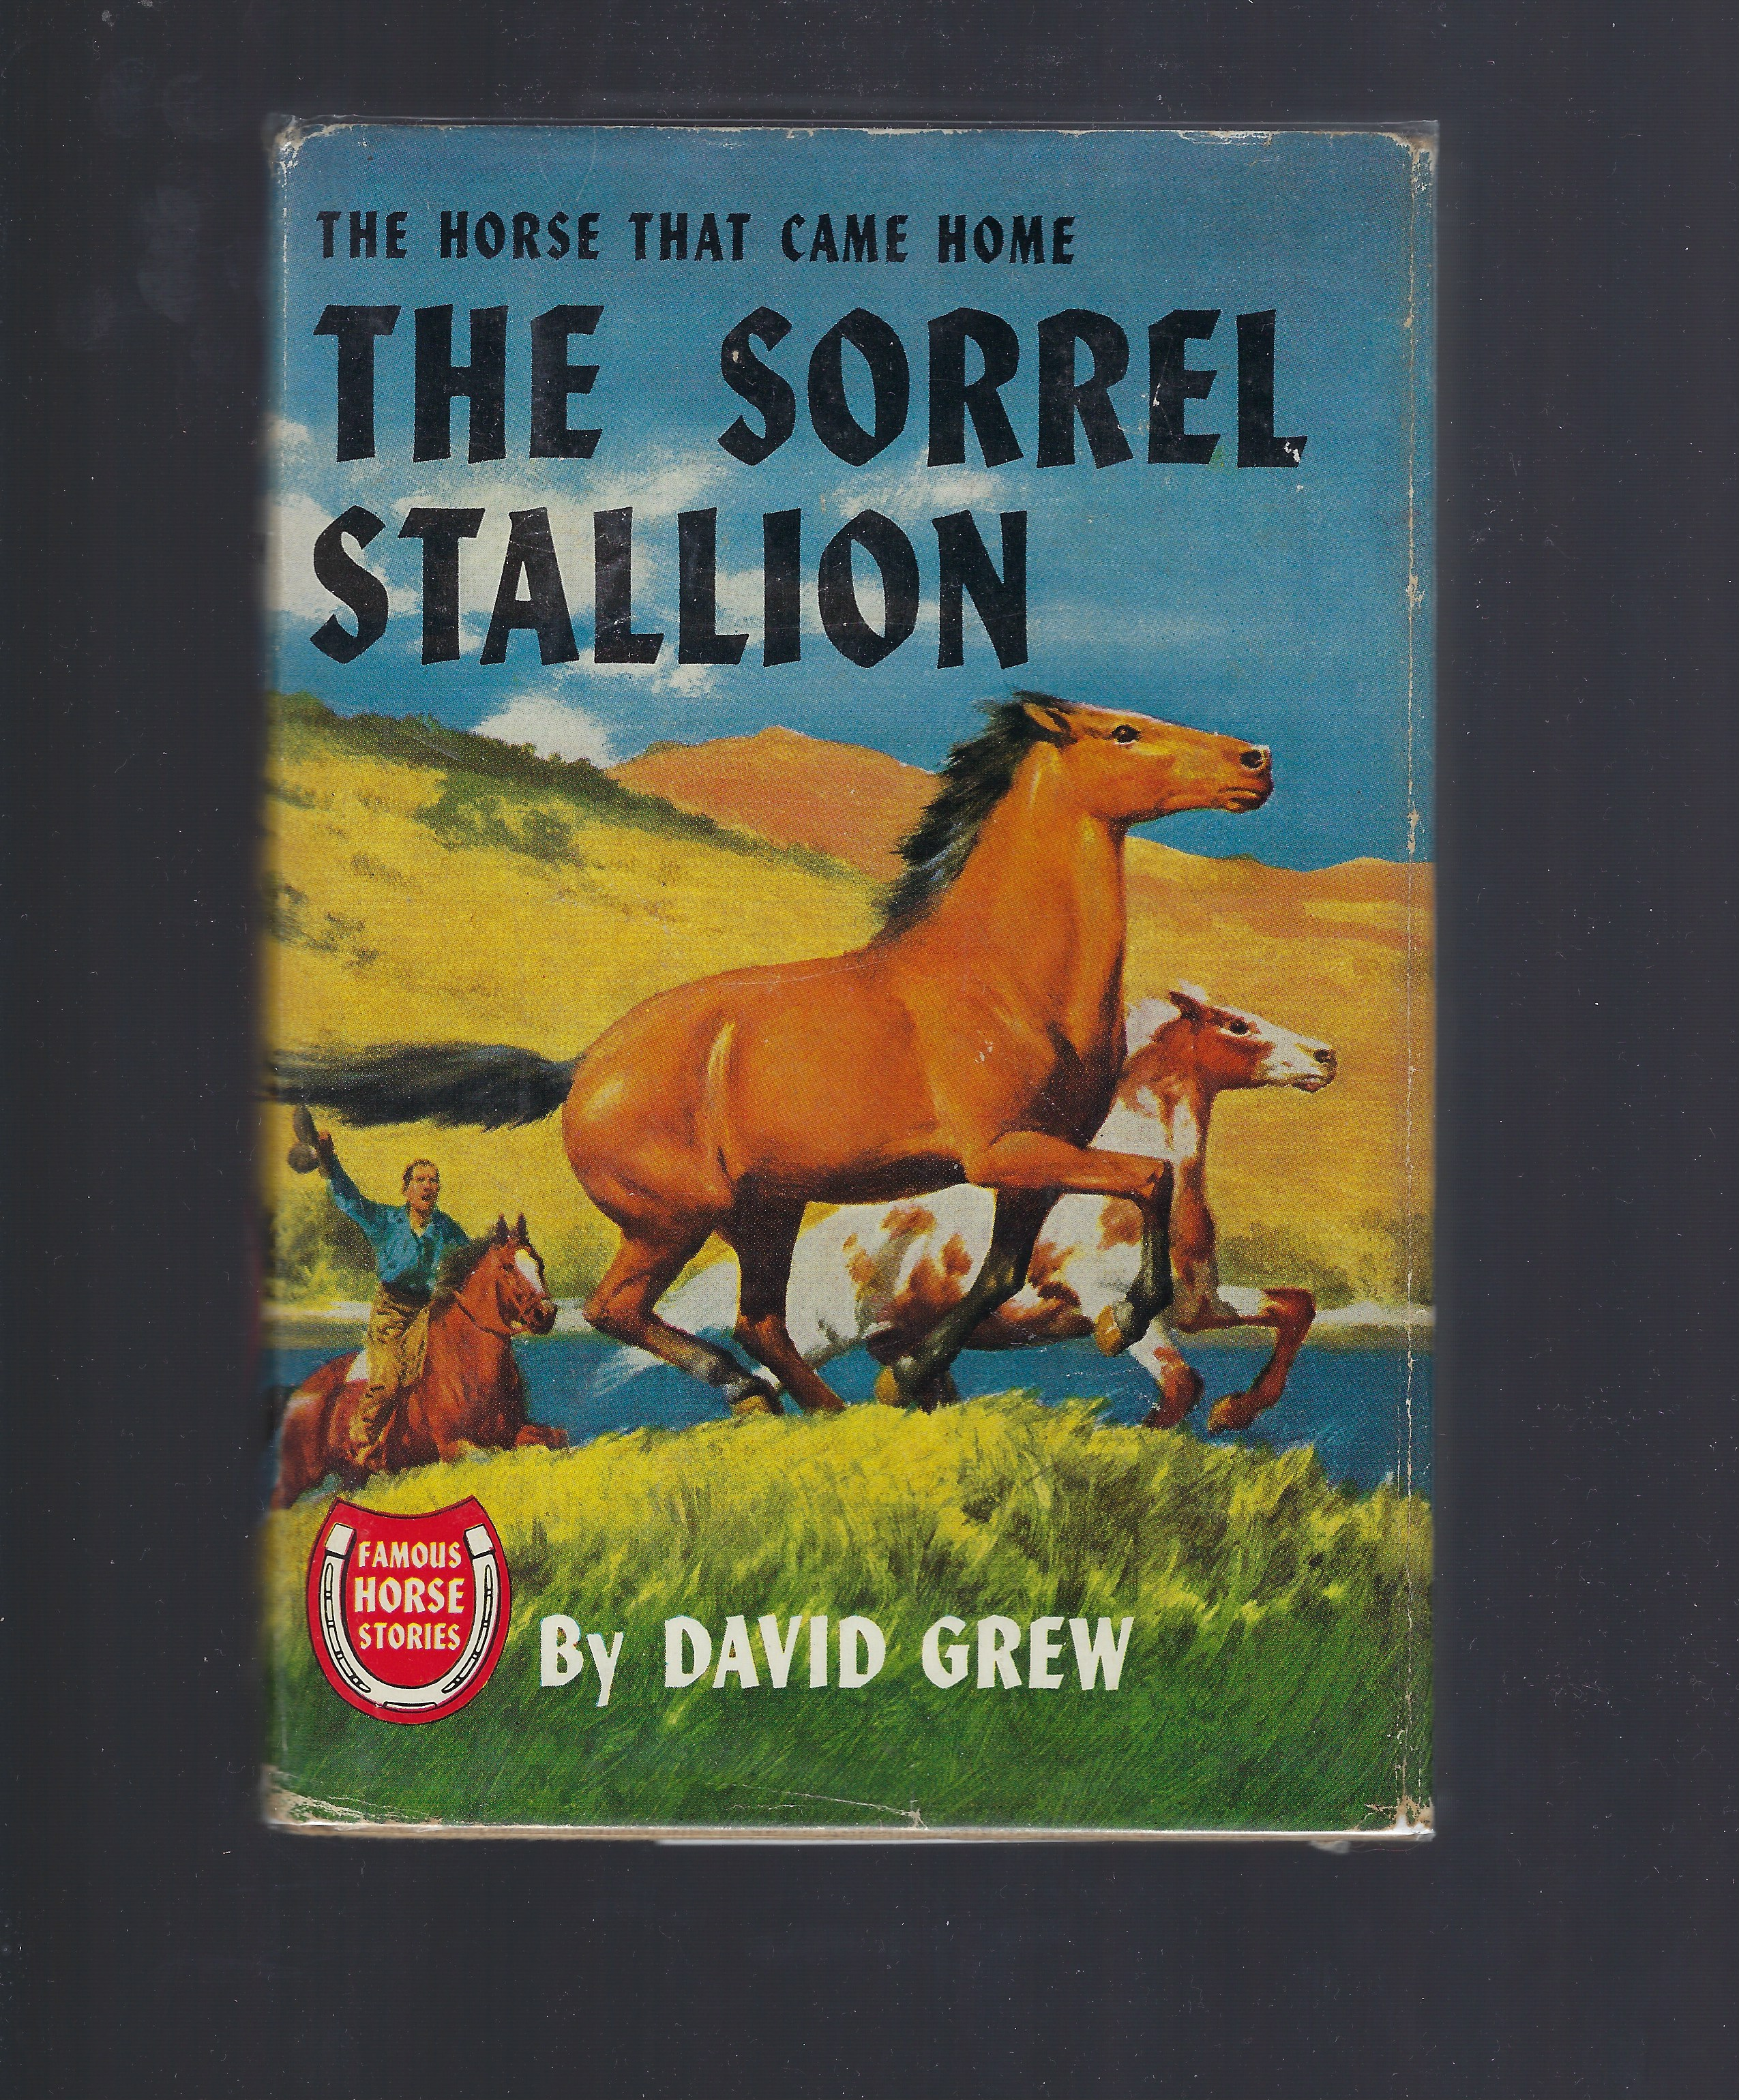 The Sorrel Stallion Famous Horse Stories HB/DJ David Grew, David Grew